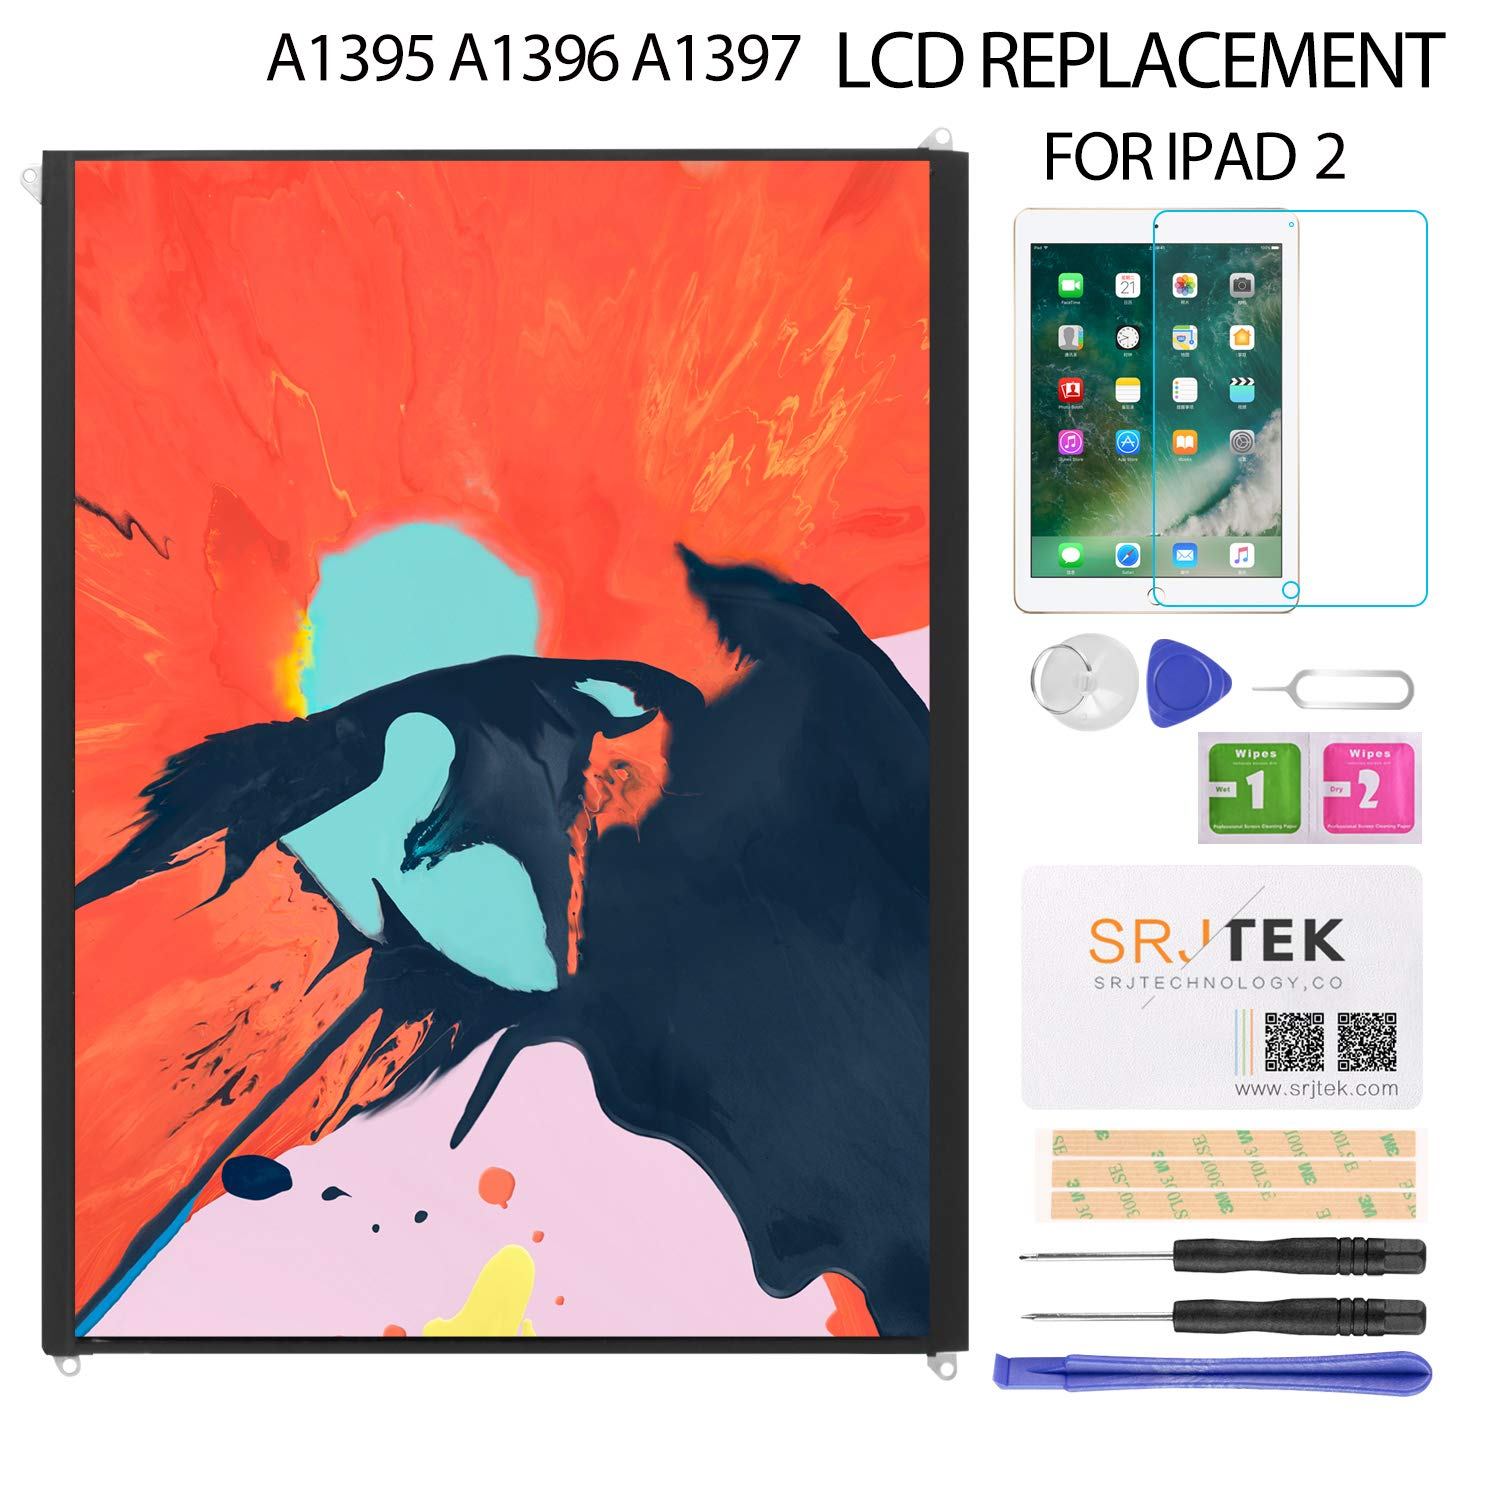 LCD Screen Replacement for IPad 2 - for iPad A1397 A1395 A1396 LCD Display Panel Repair Parts Kit by SRJTEK (Image #6)